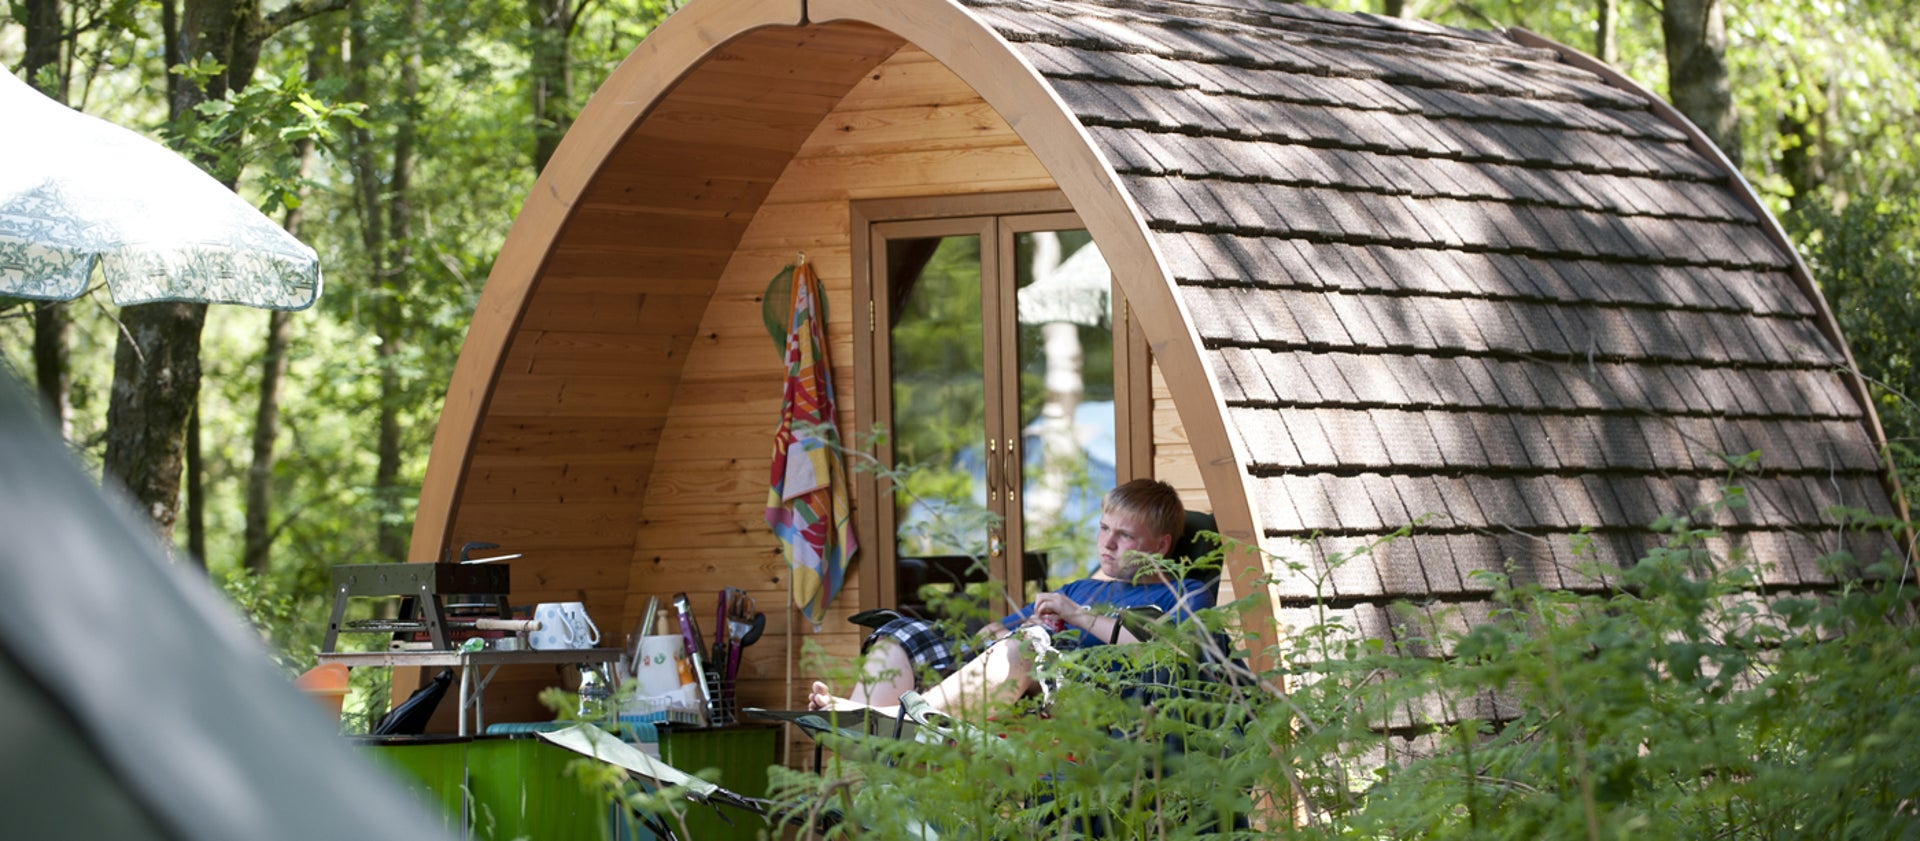 Find glamping pods & glamping holidays UK | National Trust